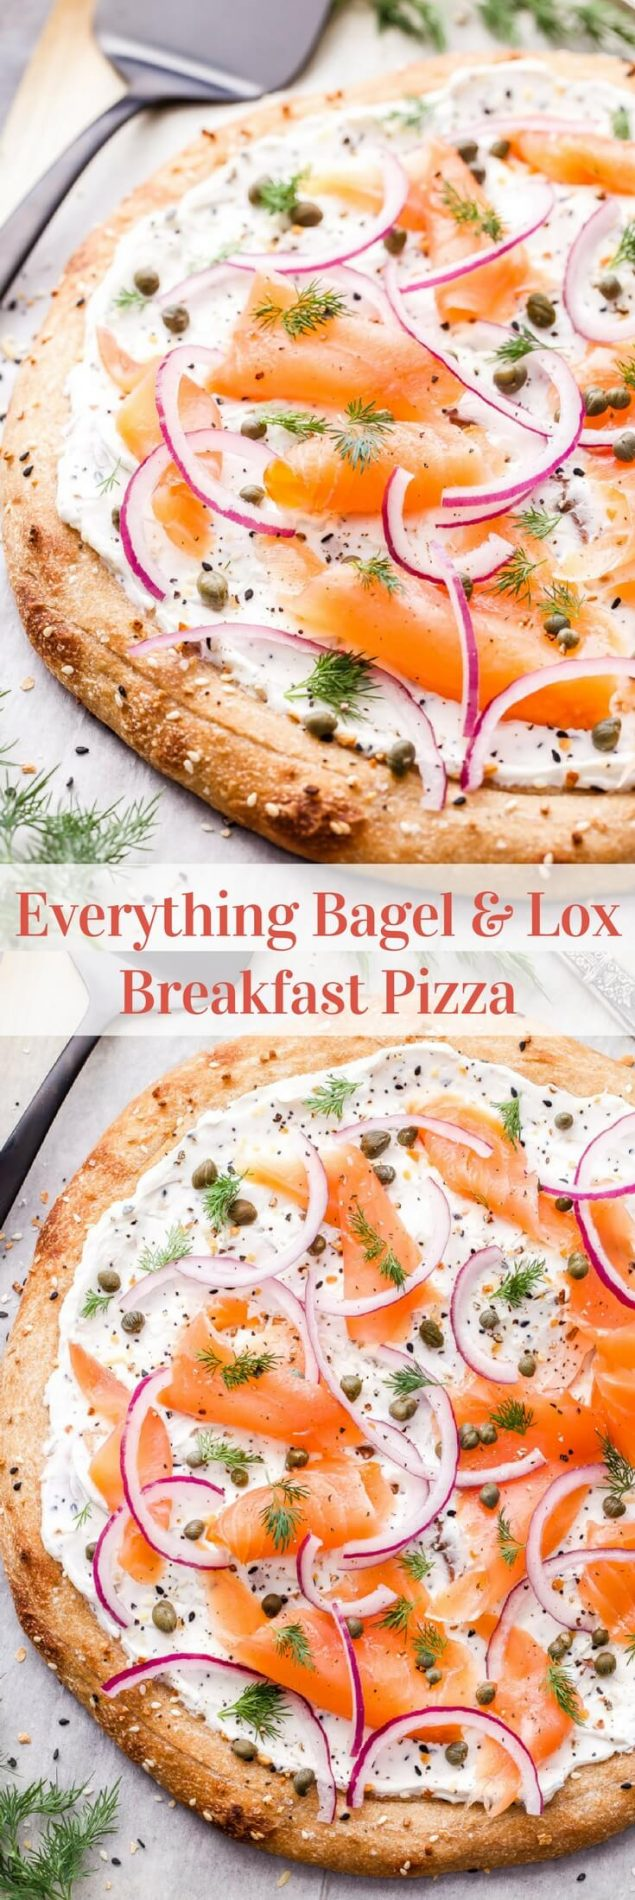 Everything Bagel and Lox Breakfast Pizza | If you love bagels and lox then you'll go crazy for this Everything Bagel and Lox Breakfast Pizza! A fun and tasty mashup on the classic that will have everyone grabbing a slice at your next brunch! #bagelsandlox #pizza #brunch #breakfast #lox